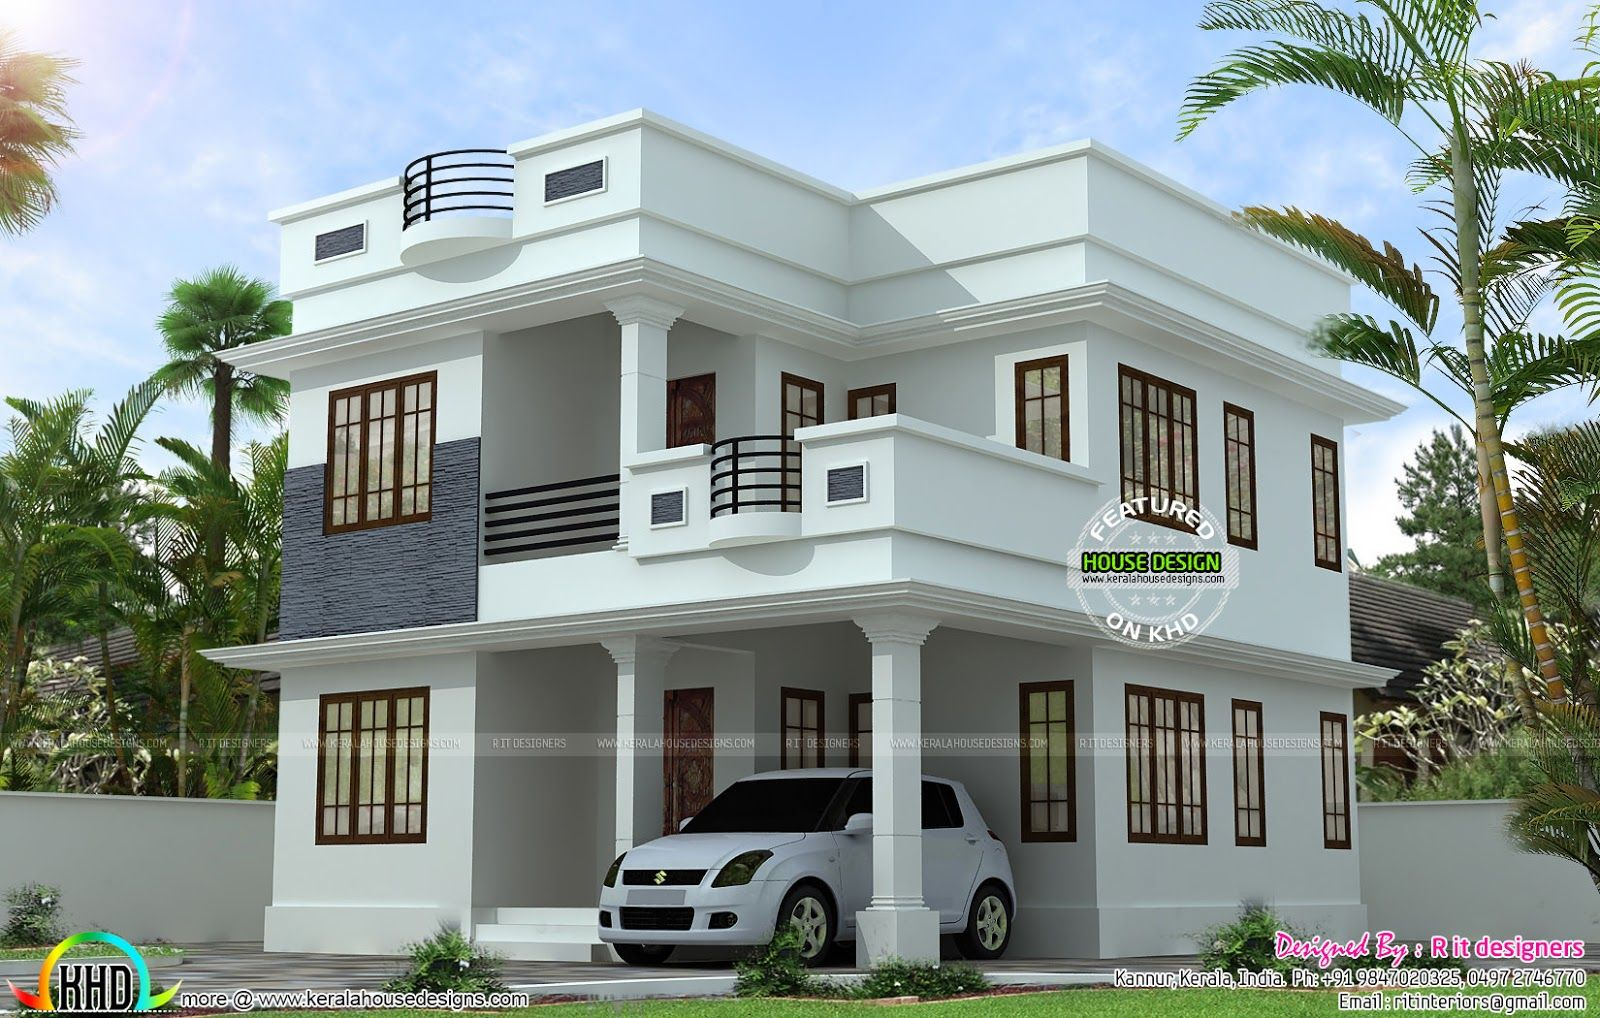 Simple Home Designs simple home design 900 sq ft 3 bhk double floor modern home design elegant homes Neat And Simple Small House Plan Kerala Home Design And Floor Plans